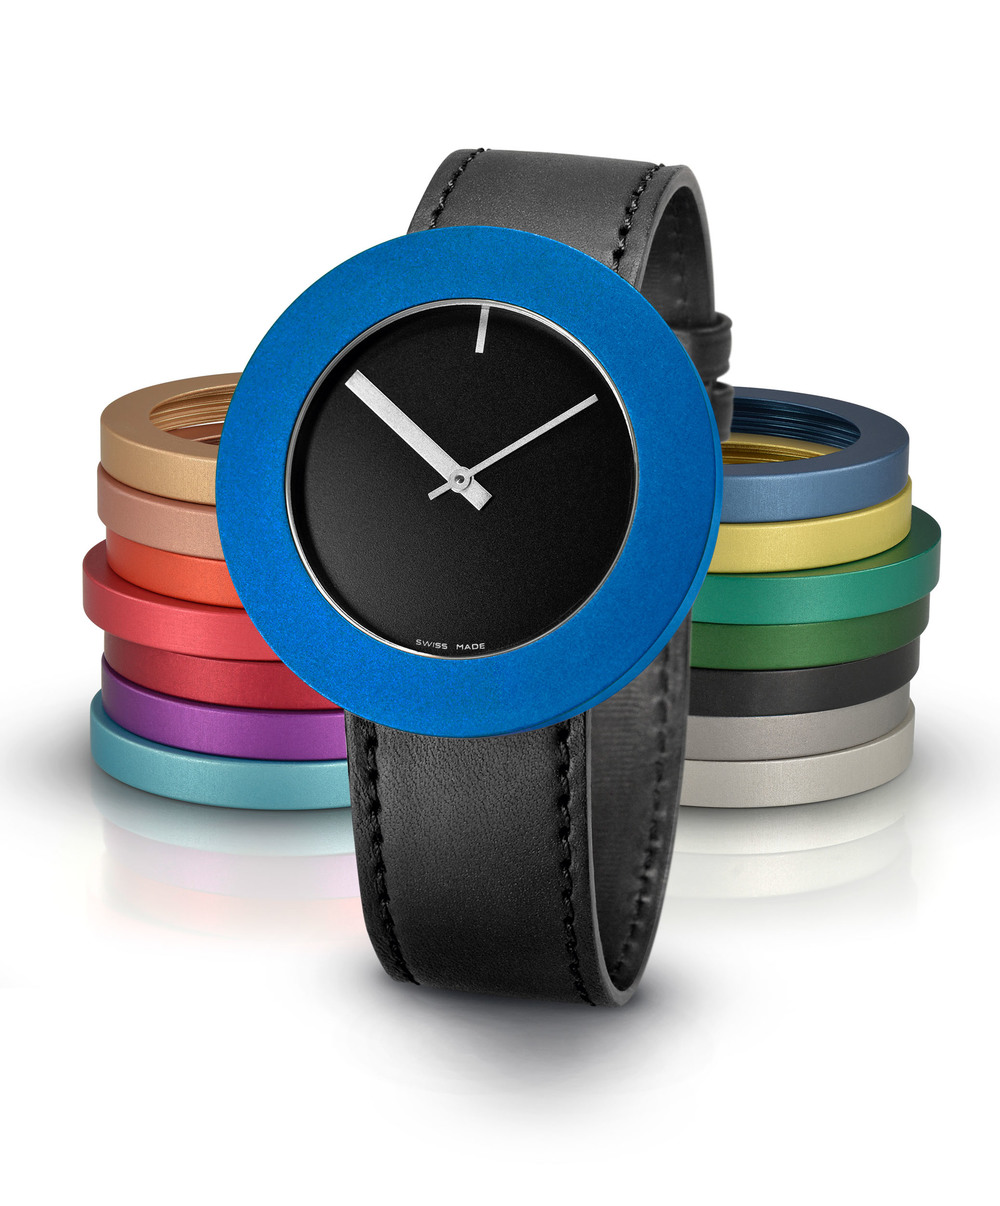 Junod-Vignelli MV40 black_dial blue_ring leather_band-small.JPG